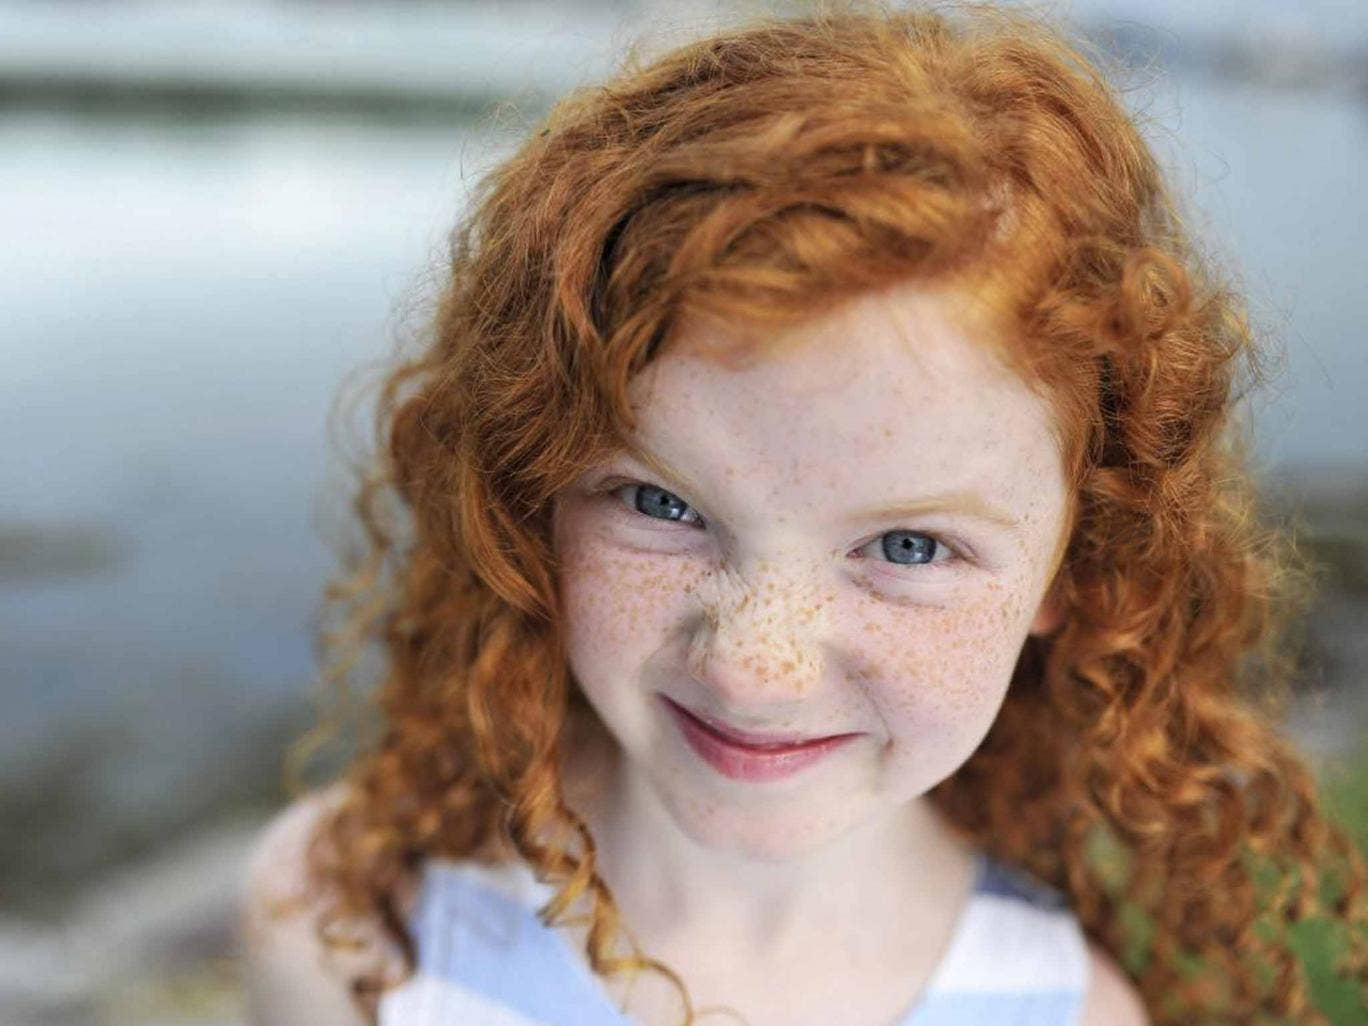 No Ginger Haired People Arent More Likely To Look Younger Or Threads Older The Independent